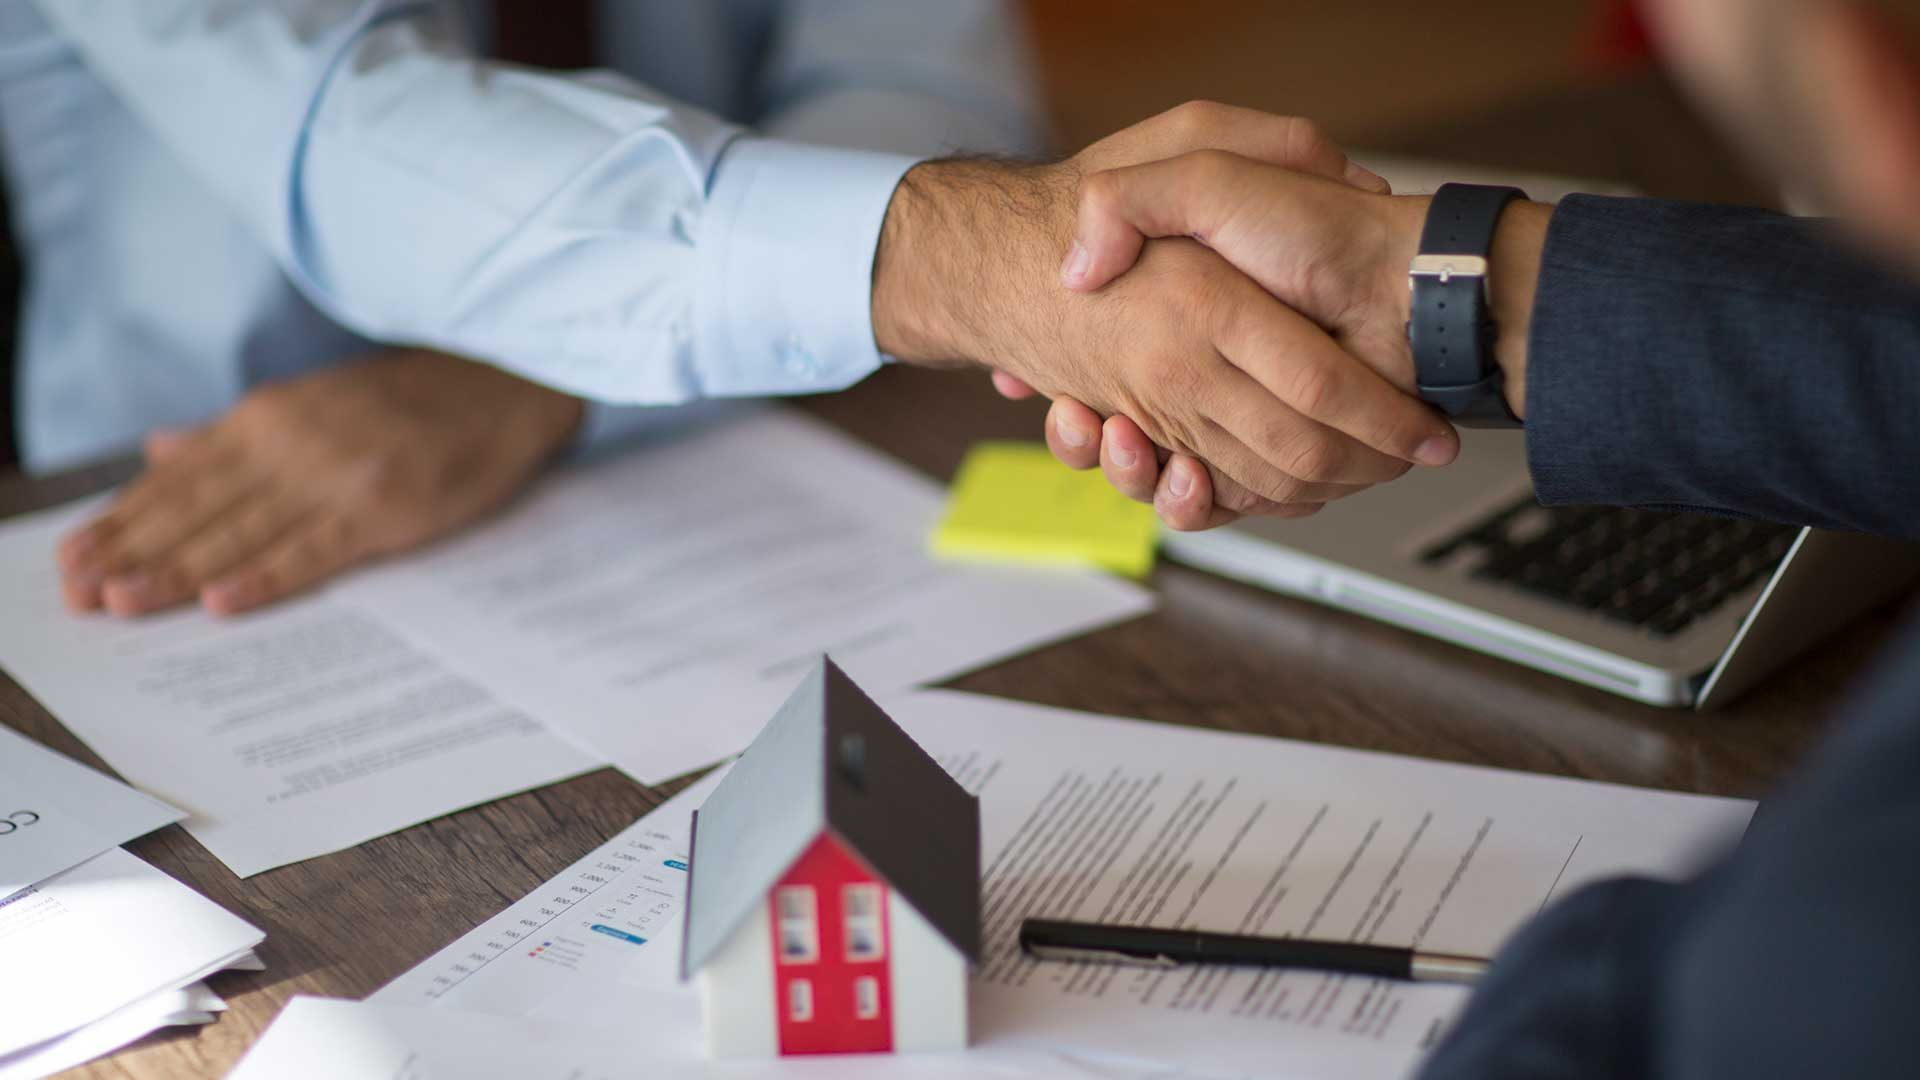 Our Top Tips for Getting a Mortgage